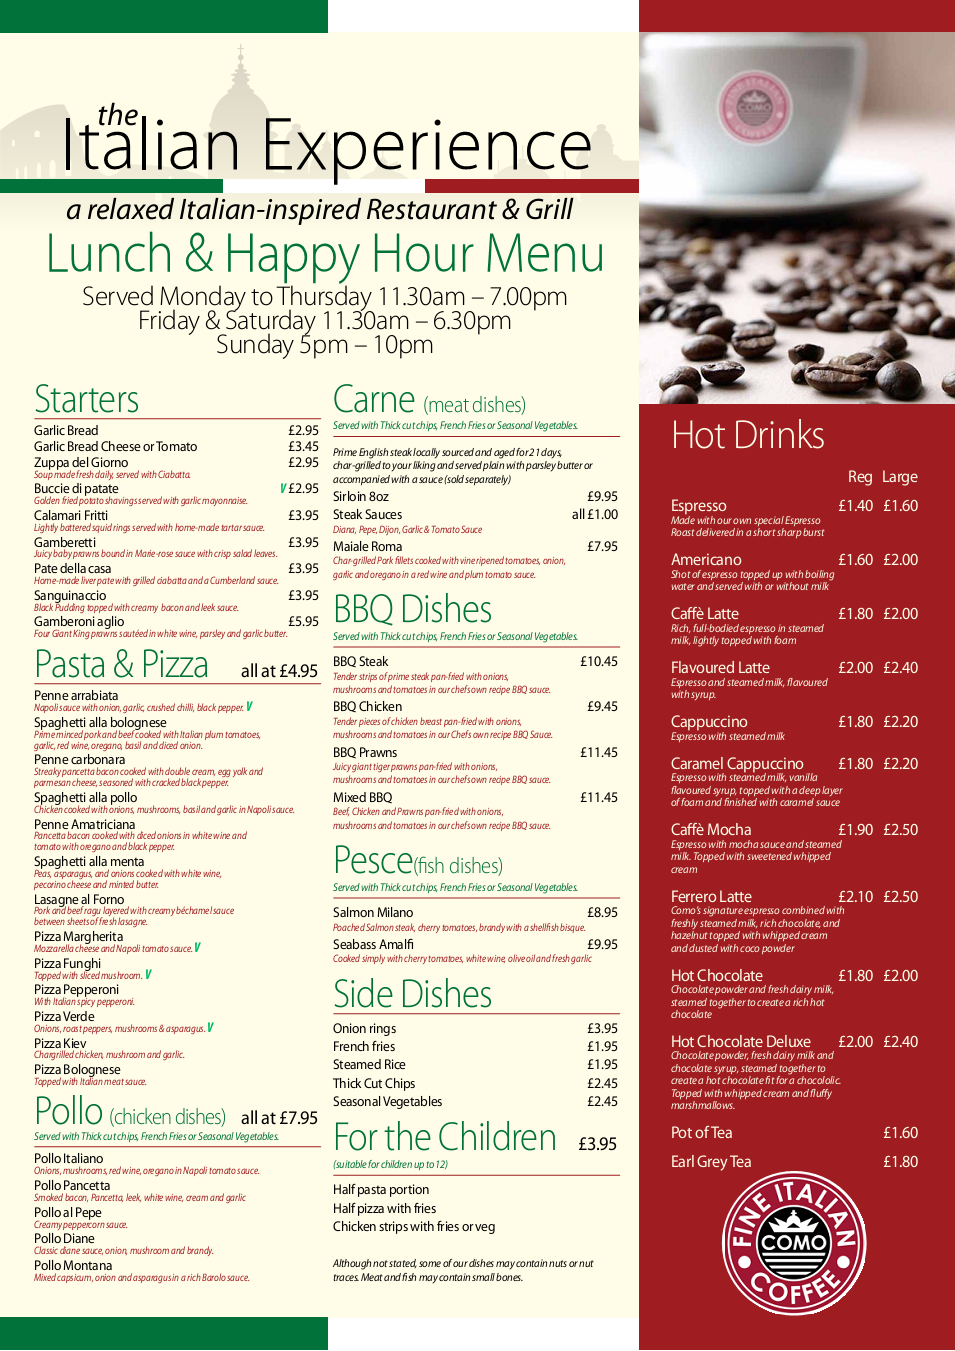 Martino's Restaurant In Seaburn Sunderland Lunch Menu